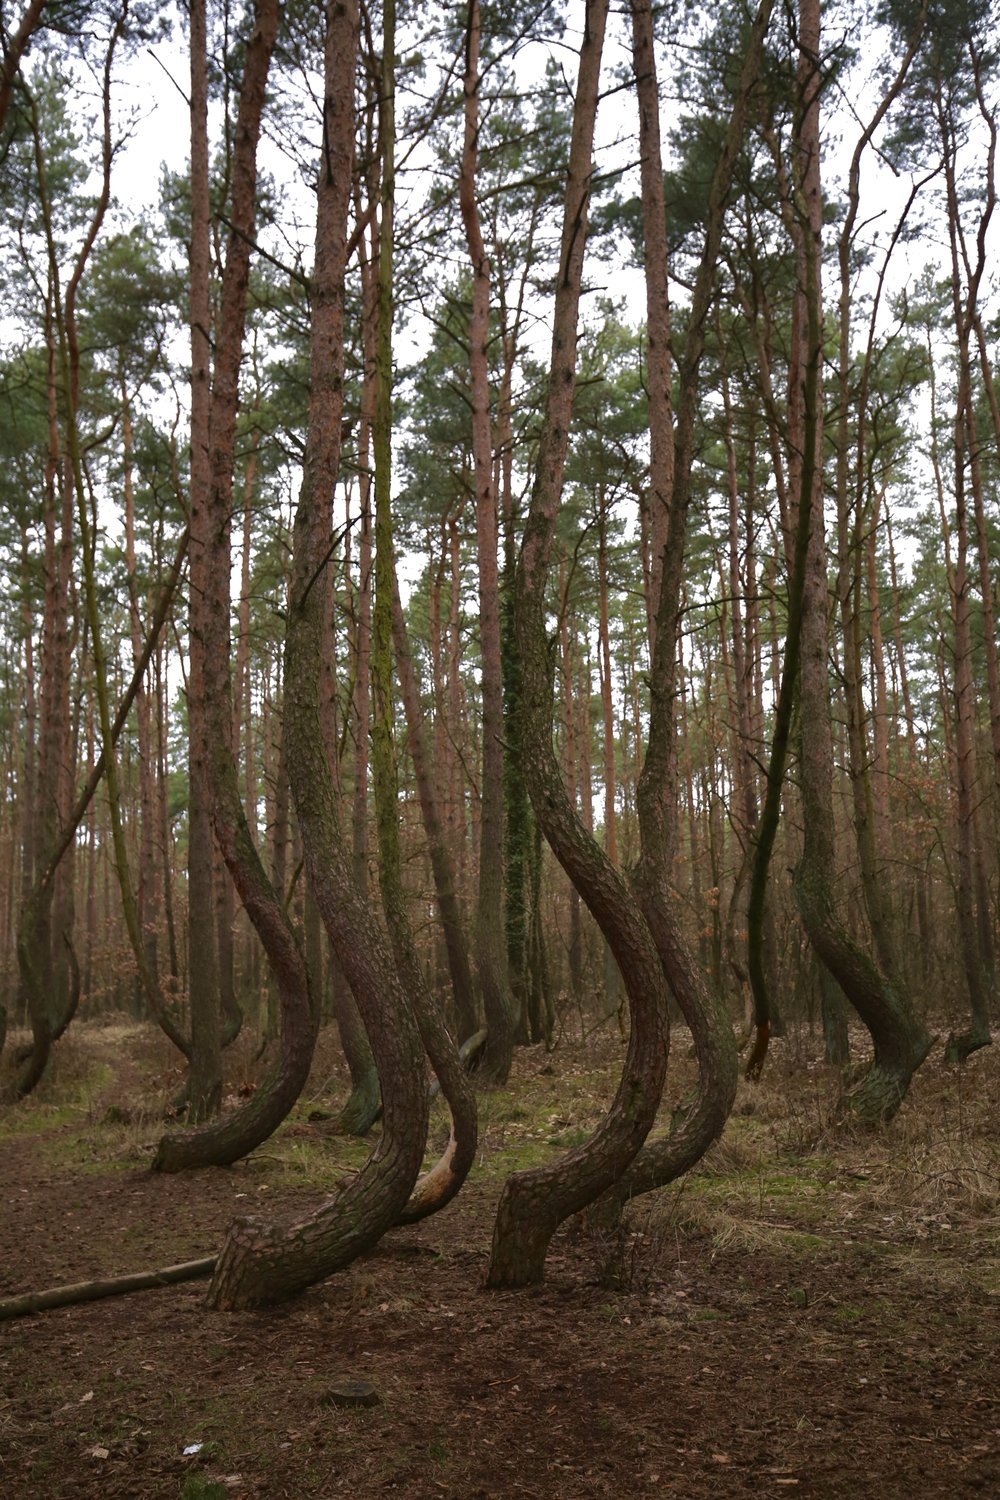 The Crooked Forest of Poland - beautiful crescent shaped trees in an enchanted pine woods.